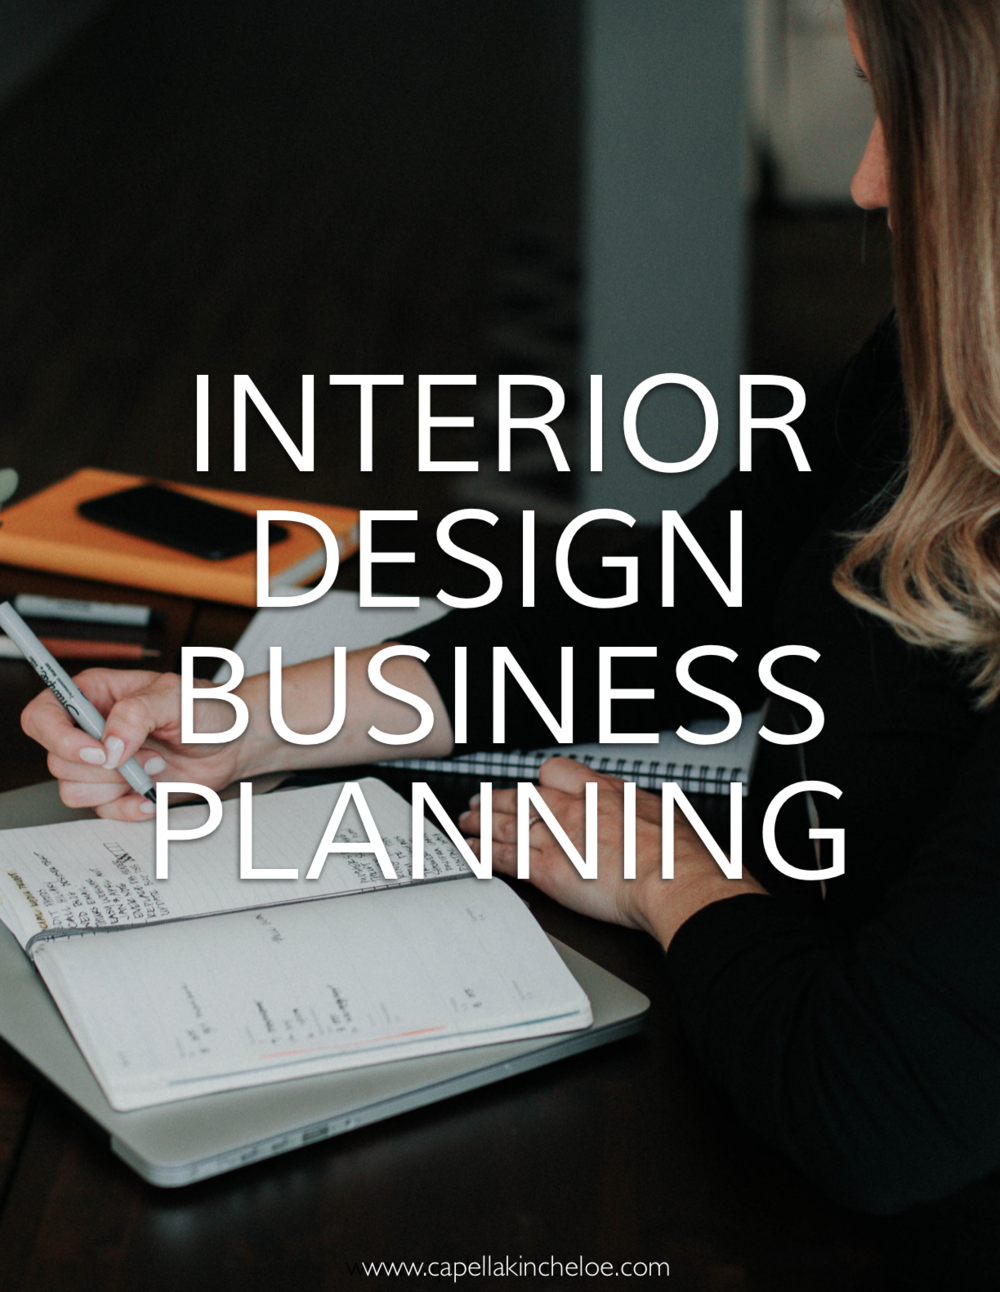 Get the confidence and direction you need in your business #CKTRADESECRETS #INTERIORDESIGNBUSINESS #BUSINESSPLANNING